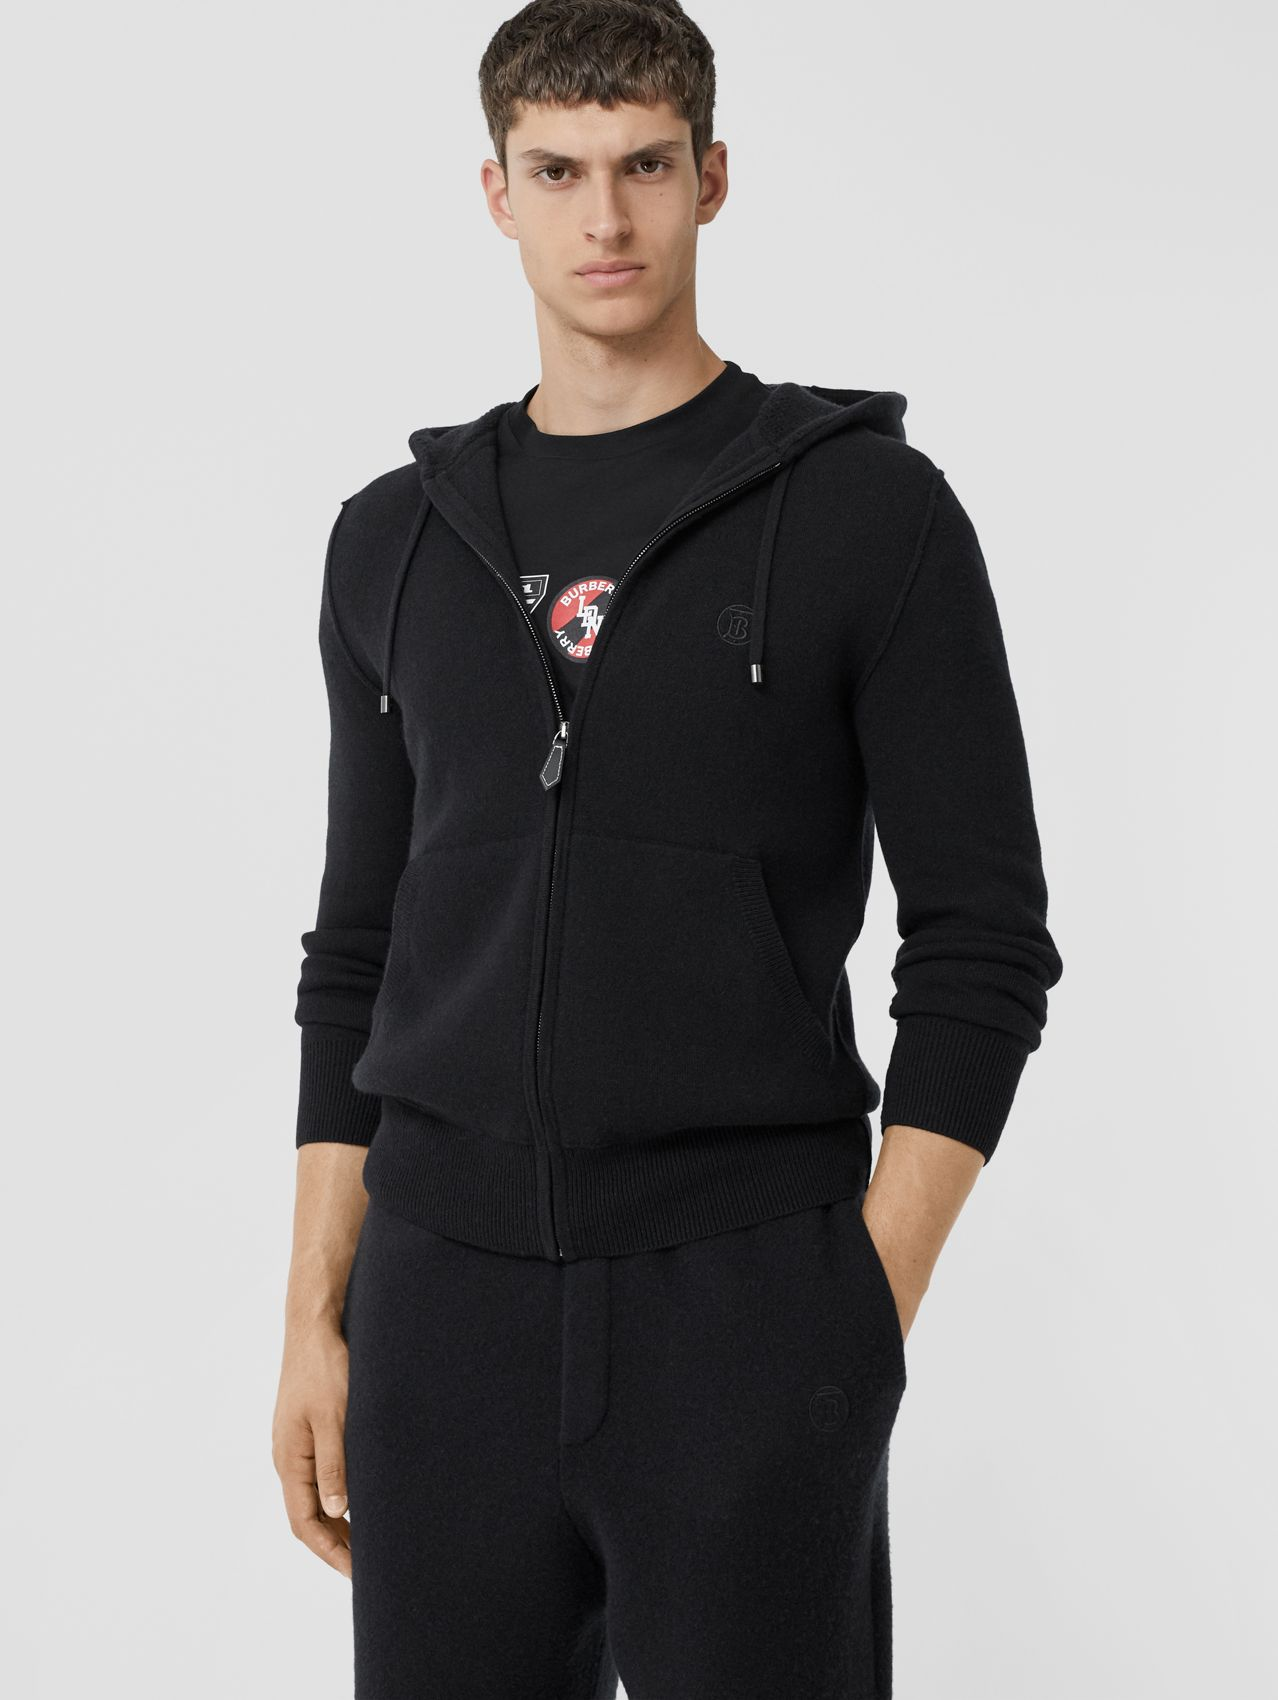 Monogram Motif Cashmere Blend Hooded Top in Black